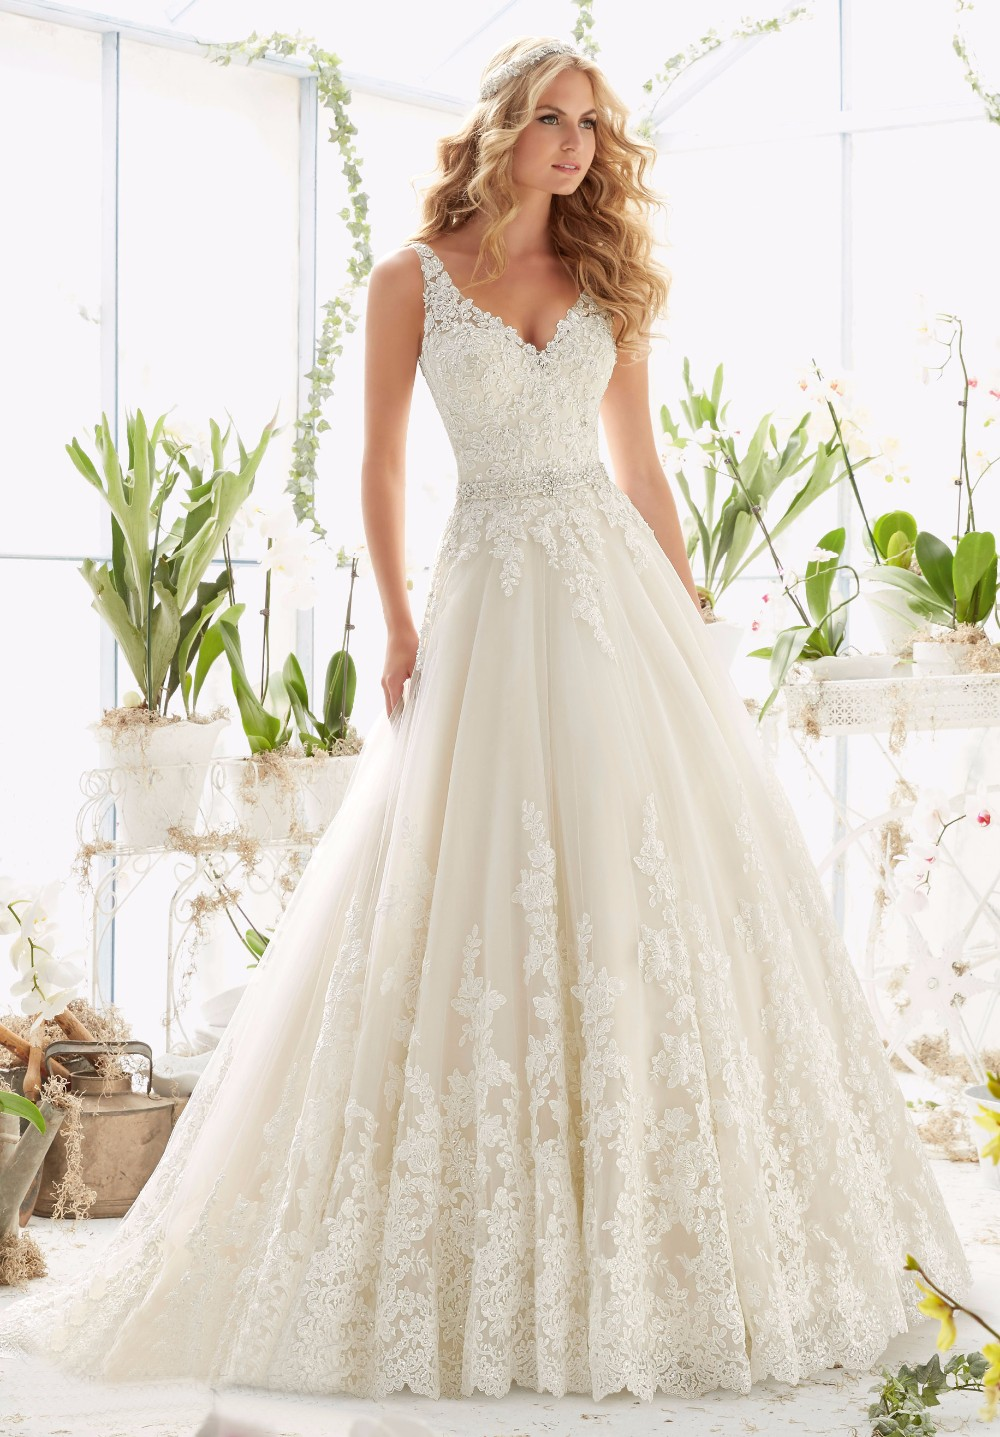 Romantic White / Ivory Lace Appliques Short Sleeves A-line Dresses Princess Banquet Dress